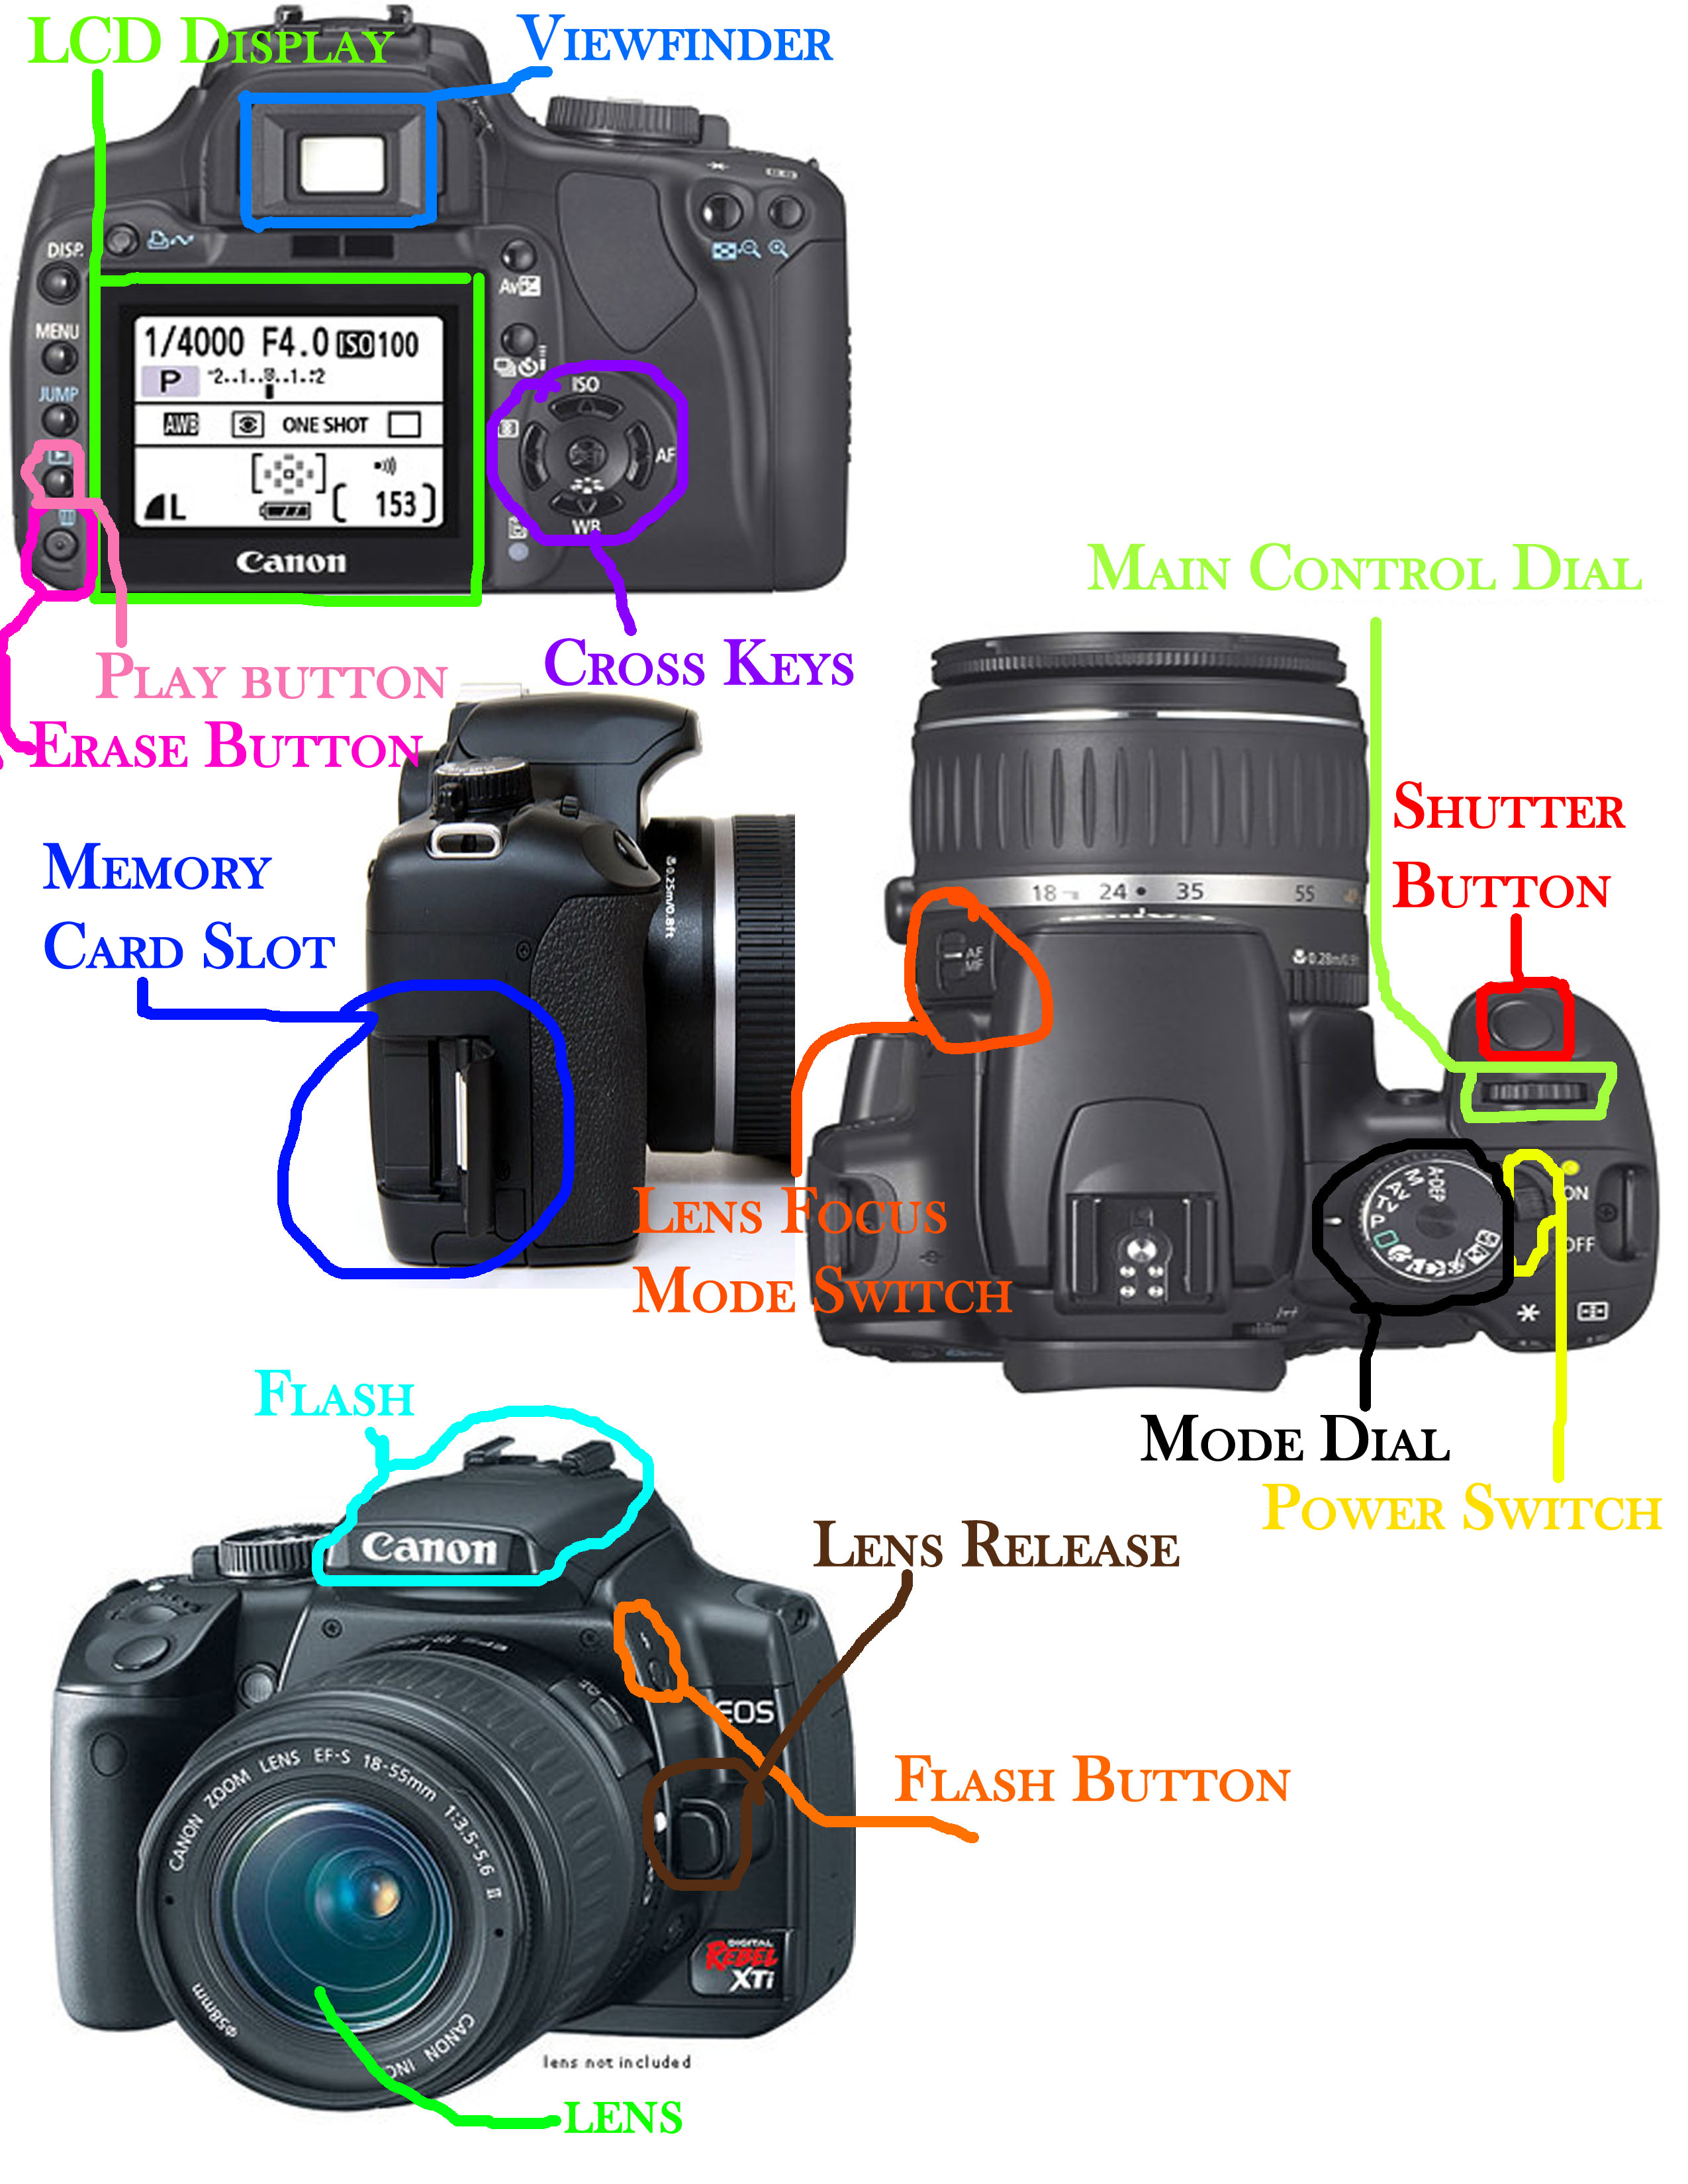 slr camera diagram male mouse anatomy lens parts free engine image for